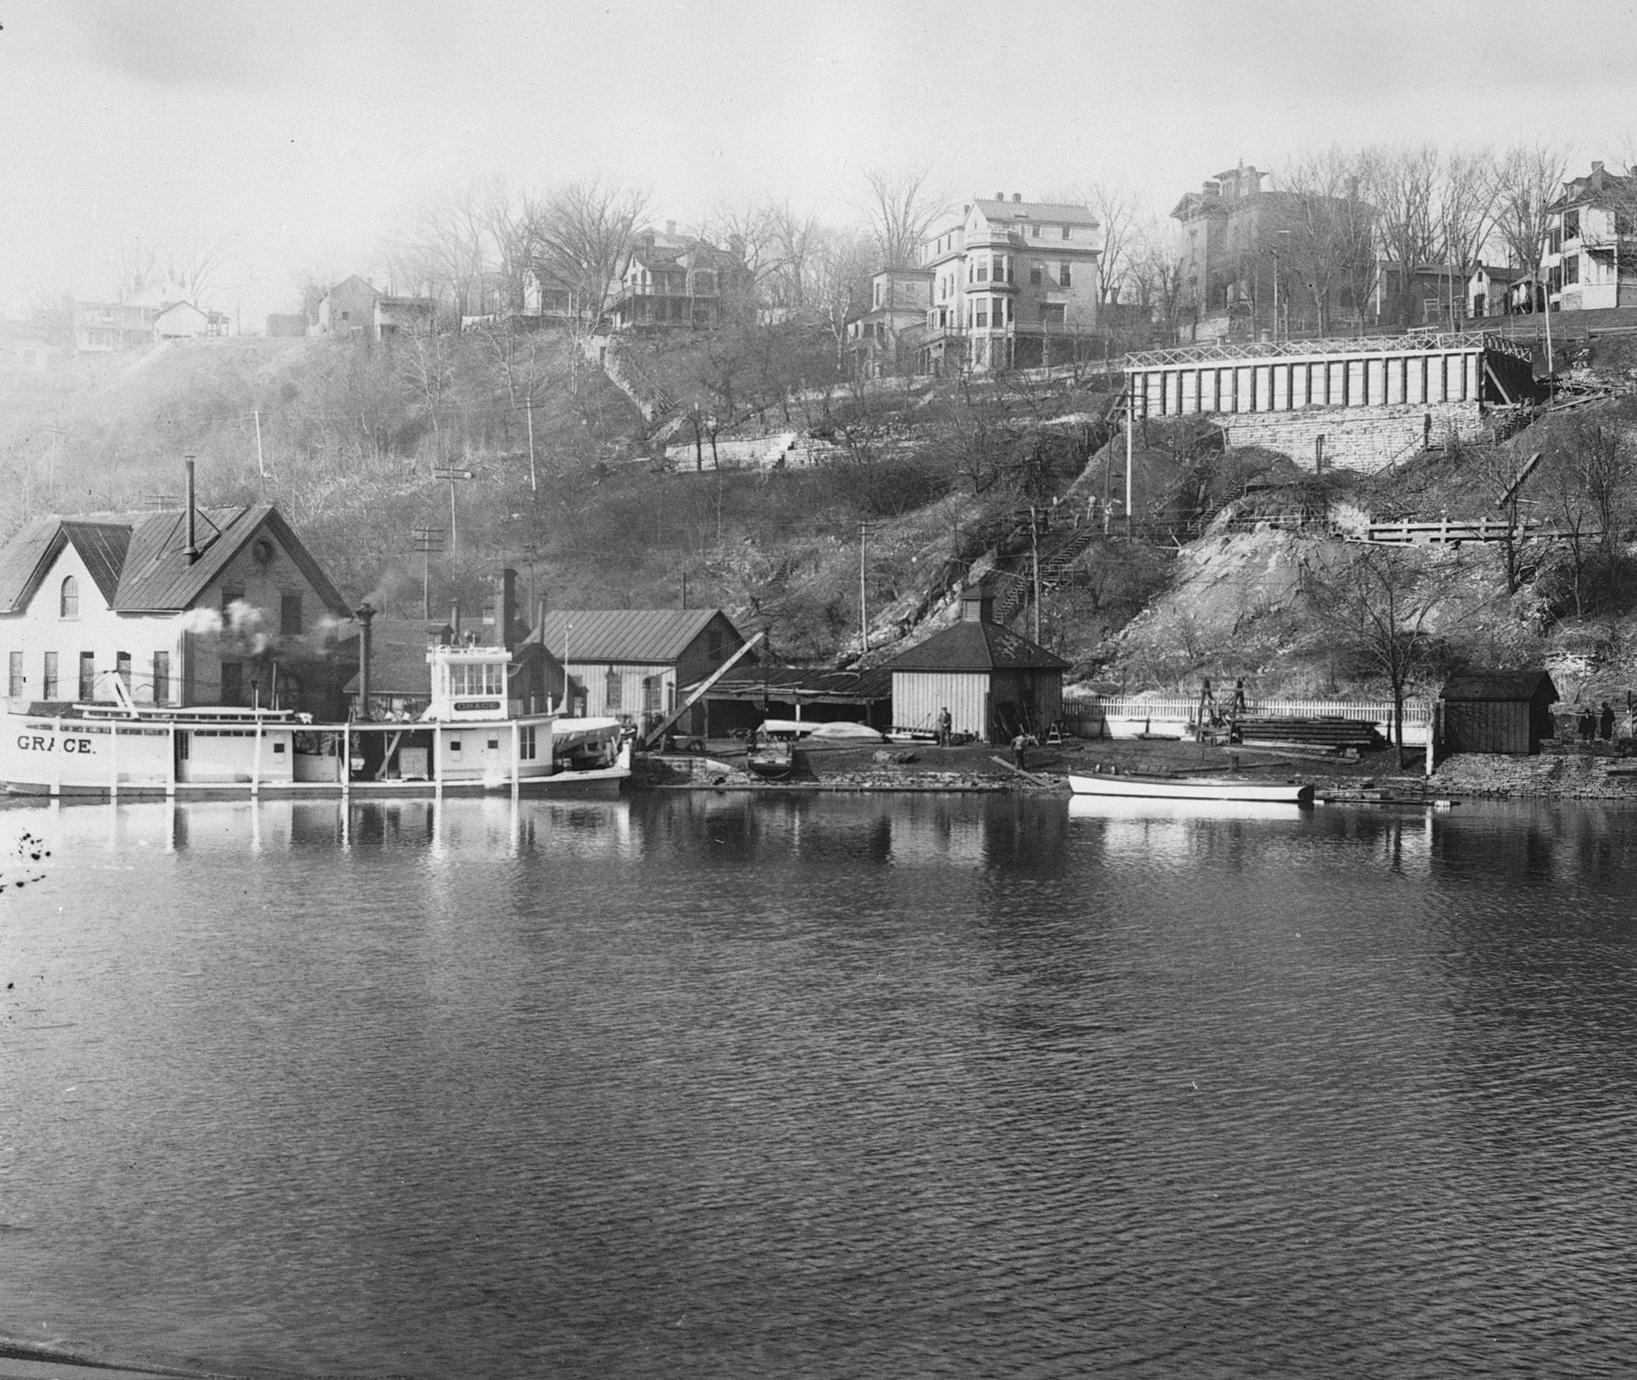 Grace (Towboat, 1904-1931)